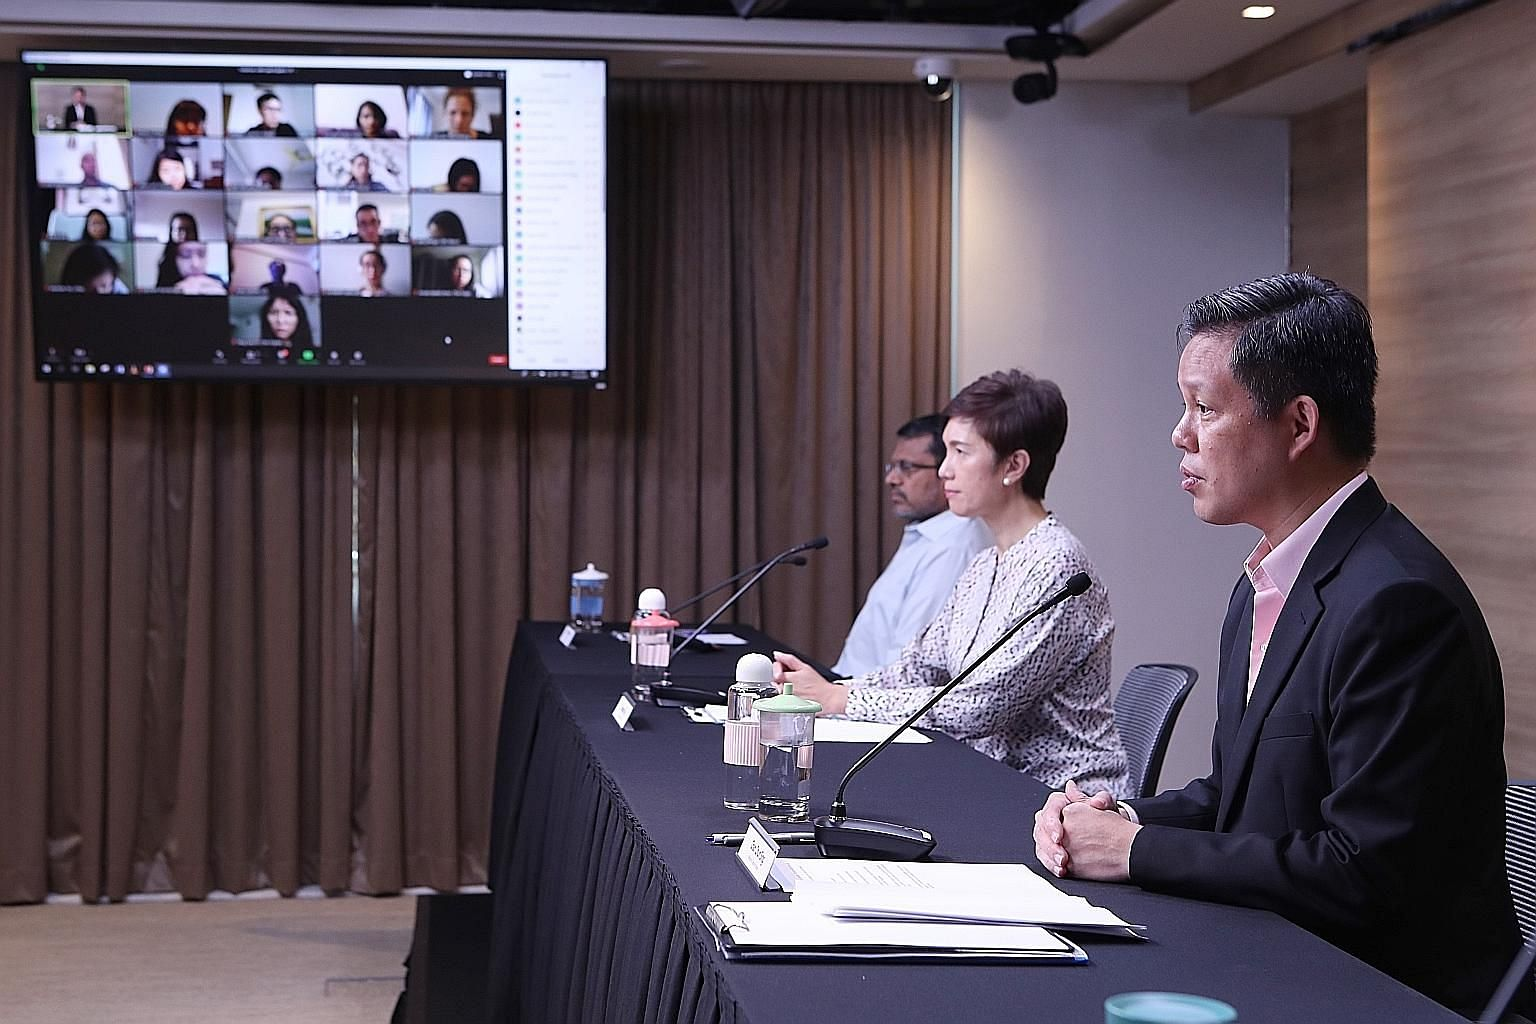 (From right) Trade and Industry Minister Chan Chun Sing, Manpower Minister Josephine Teo and Monetary Authority of Singapore managing director Ravi Menon at yesterday's press conference, where it was announced that Singapore's economy contracted 6.7